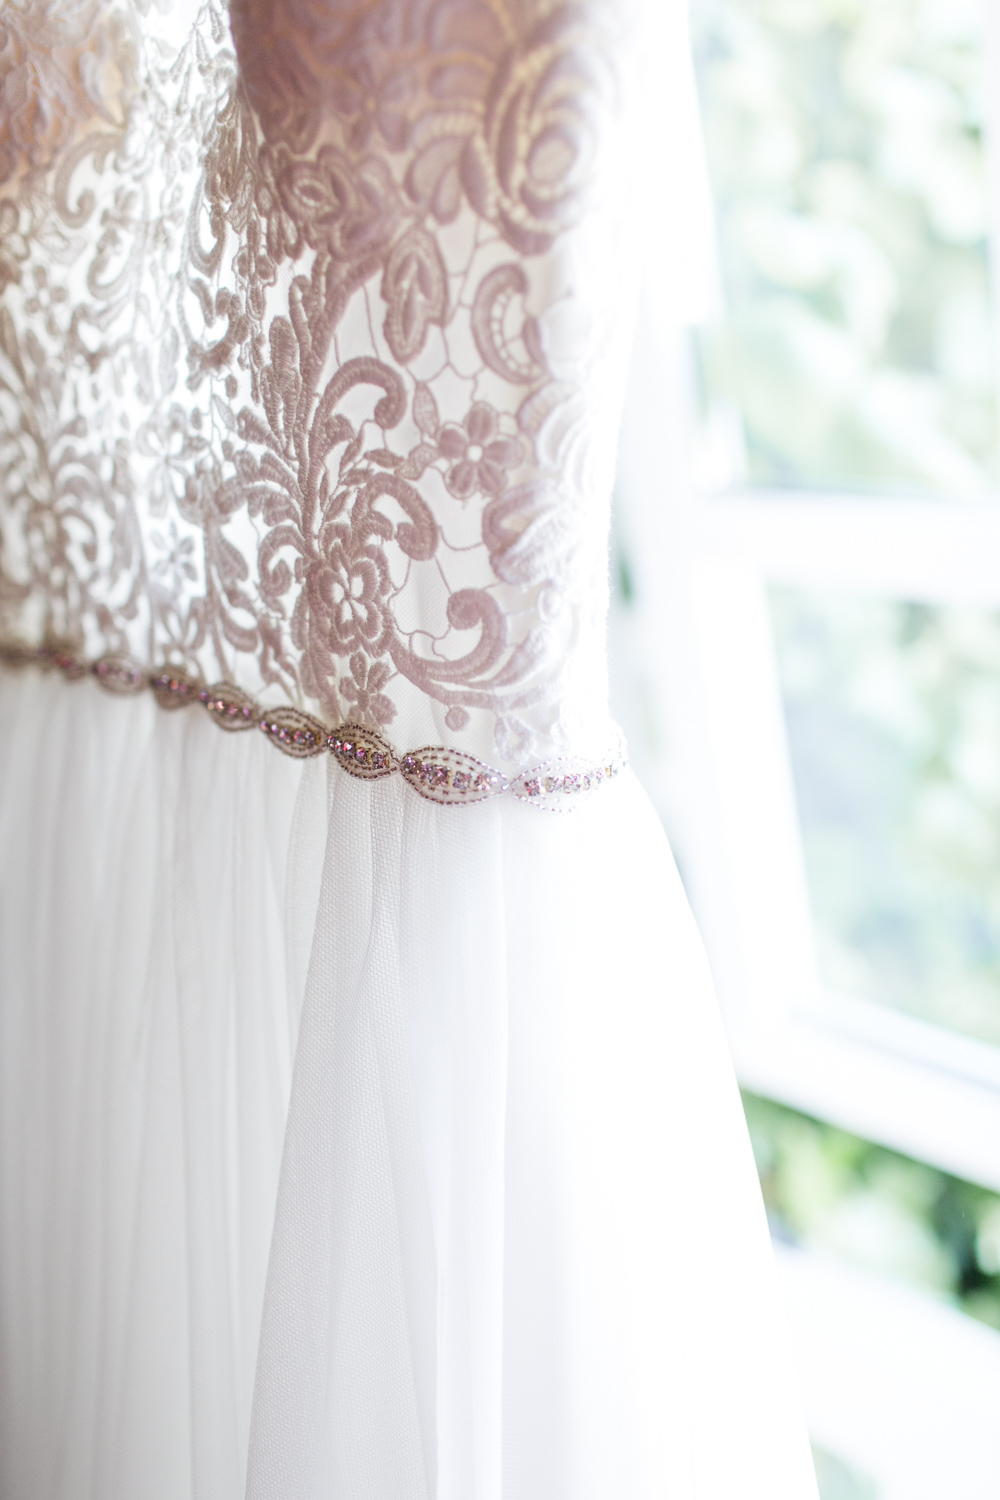 Lace detail of the wedding dress during getting ready time